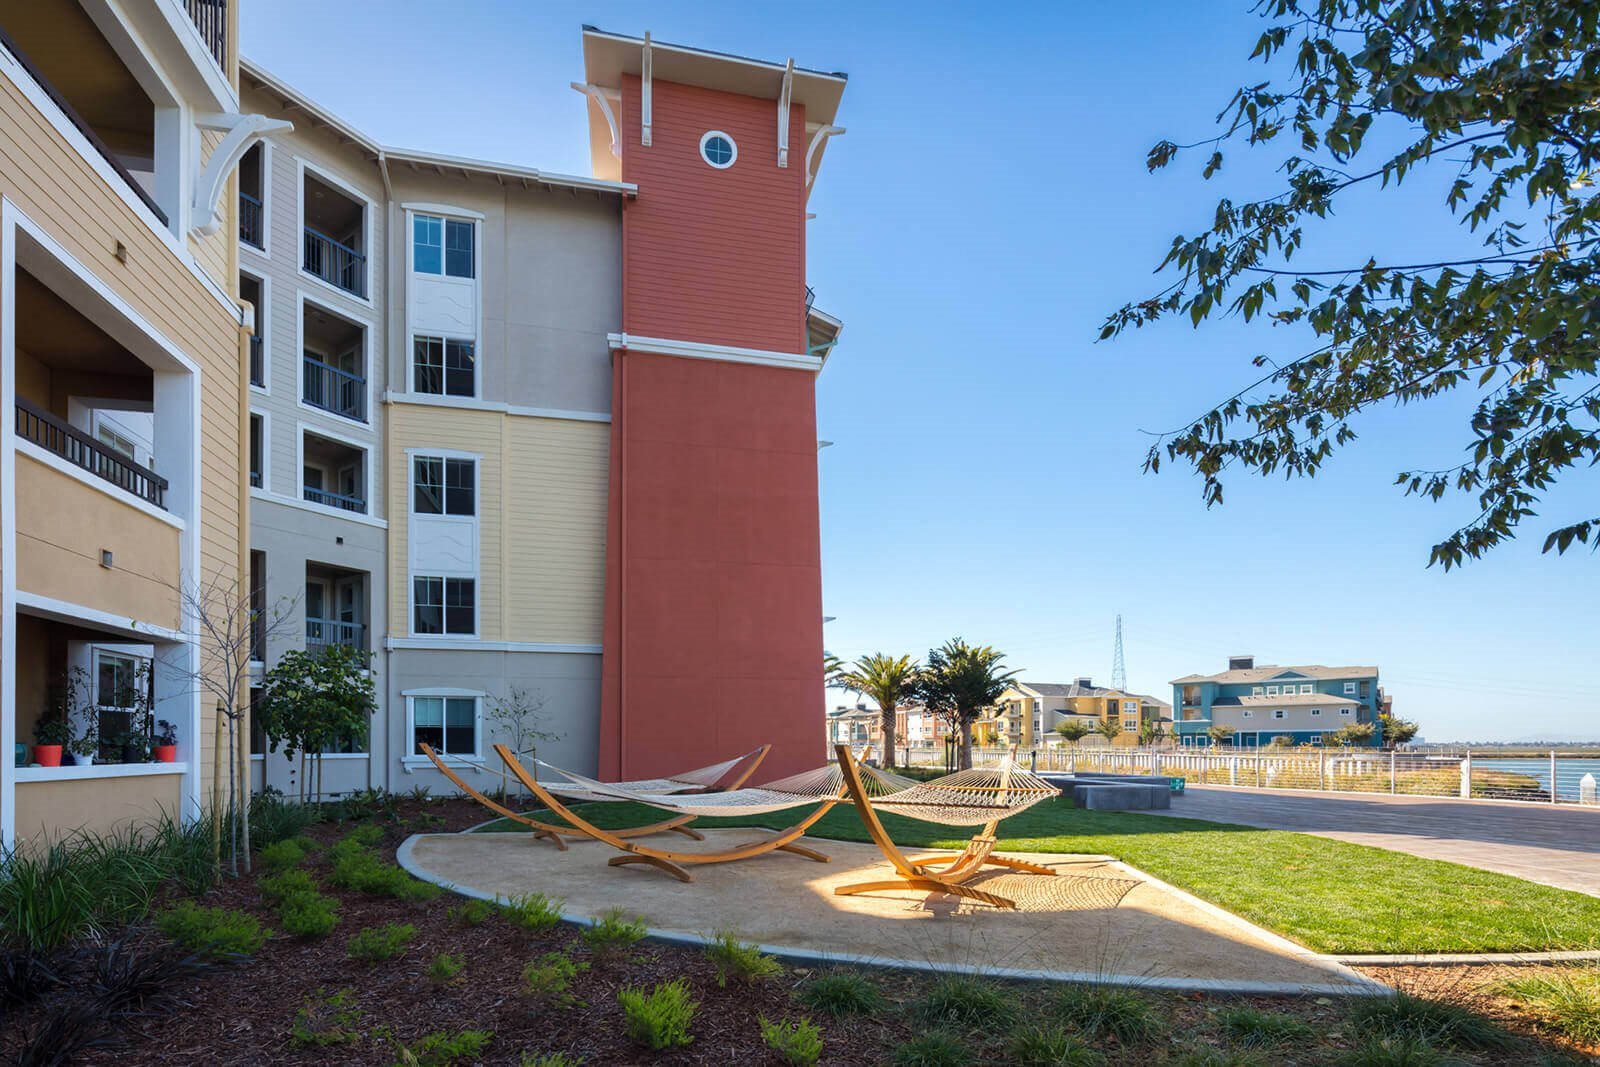 Hammocks To Relax at Blu Harbor by Windsor, Redwood City, California